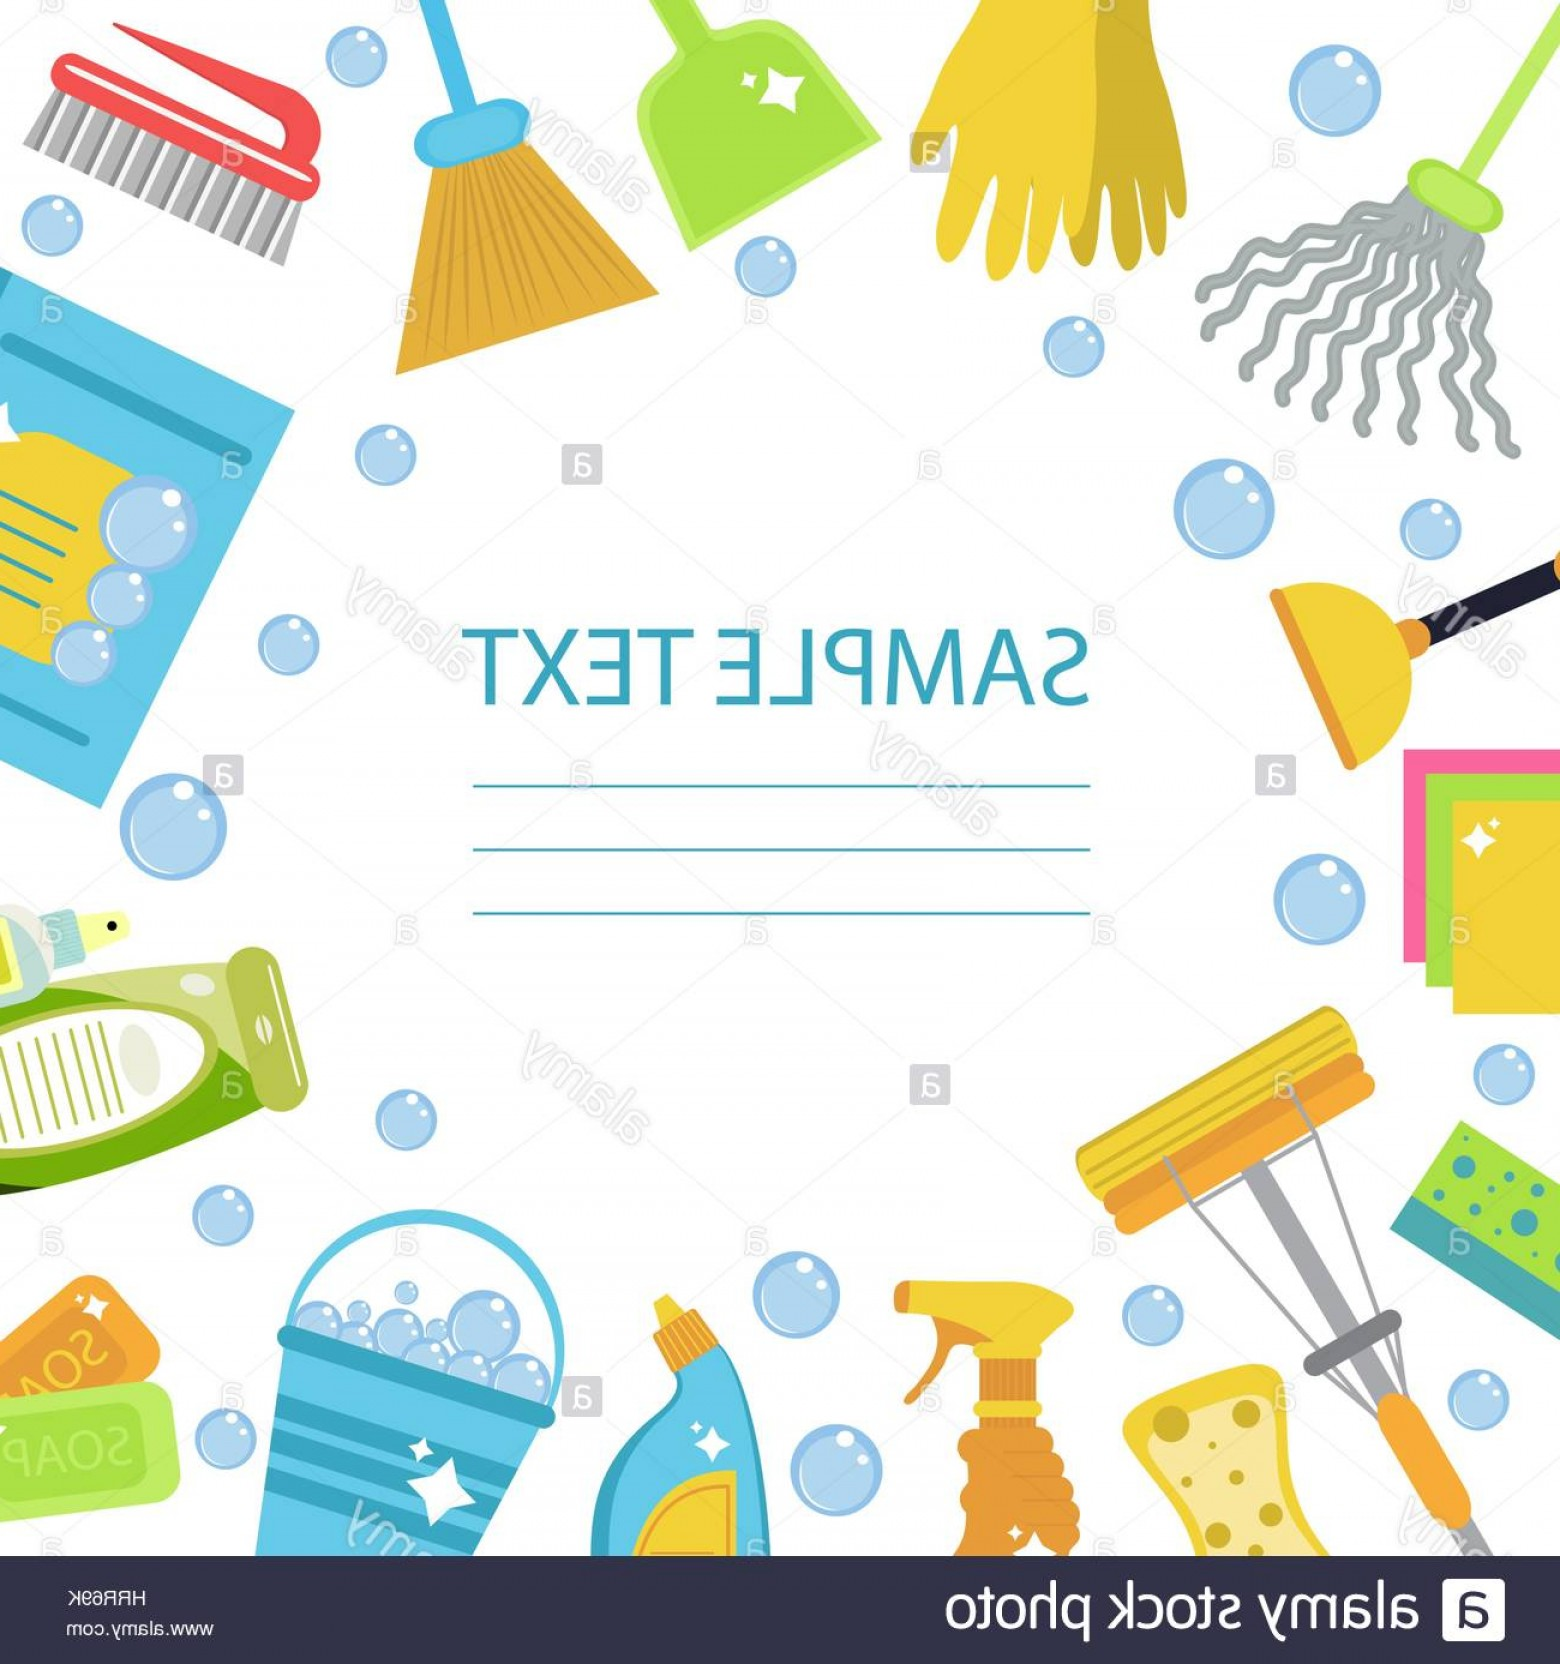 Cleaning Vector Background: Stock Photo Set Of Icons For Cleaning Tools Cleaning Template For Text Background